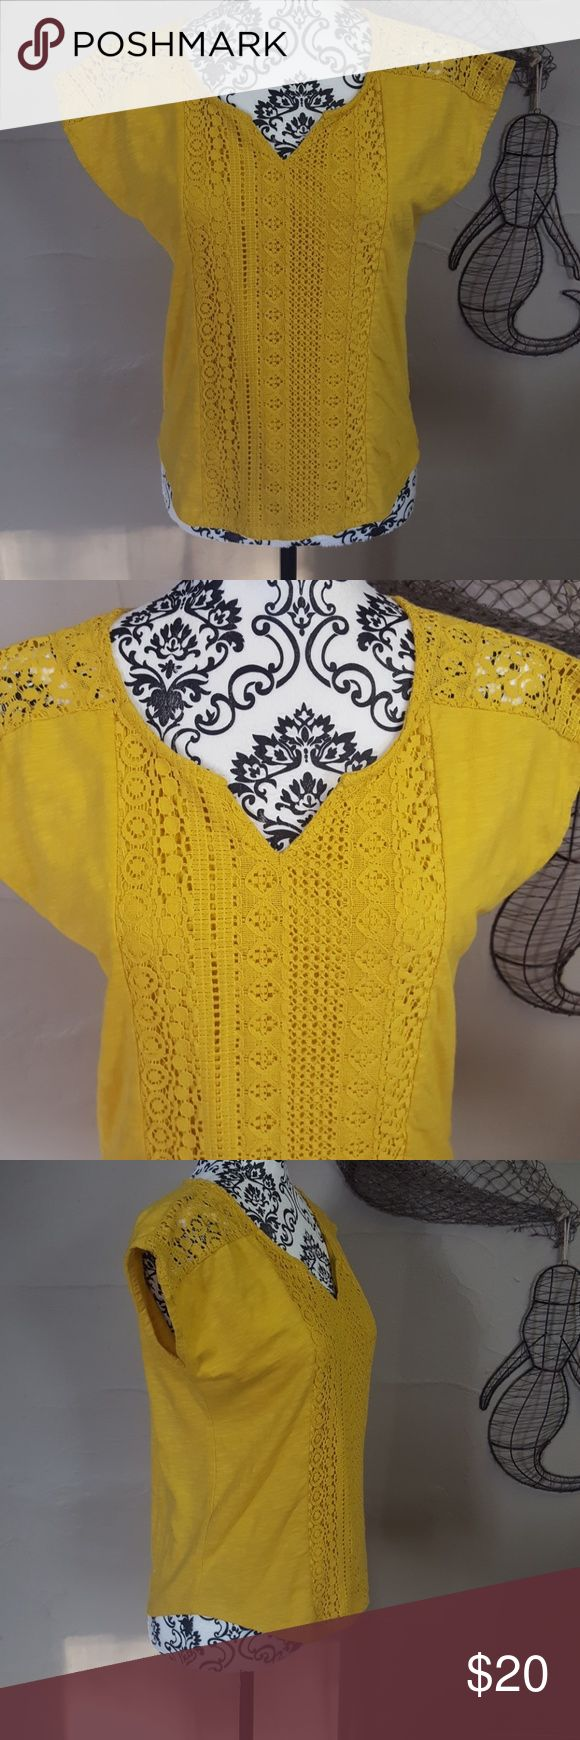 Mustard Boho Crochet Tee Top New without tags! Size Medium. The top is a mustard color which is one of the new fall colors for 2017! Crochet detailing down the front and on the sleeves. Light, cotton material. So gorgeous! 89th & Madison Tops Tees - Short Sleeve